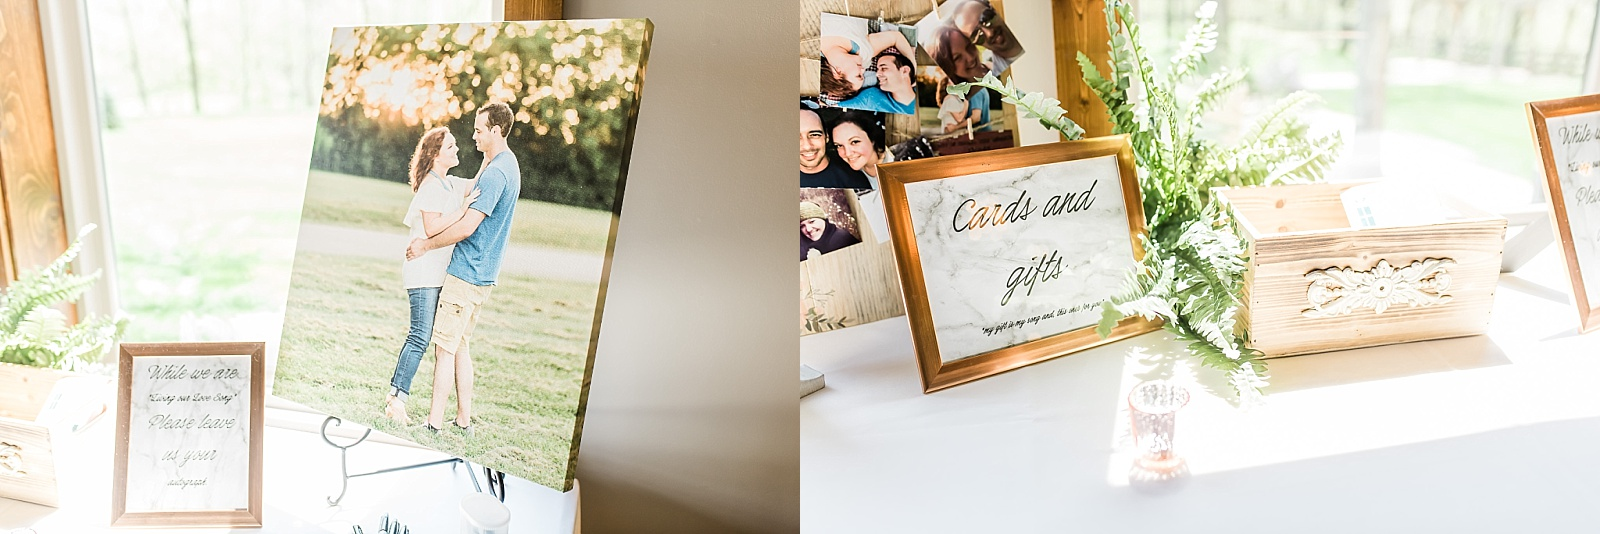 crawfordsville indiana stone creek lodge wedding rustic elegant friends theme_0104.jpg